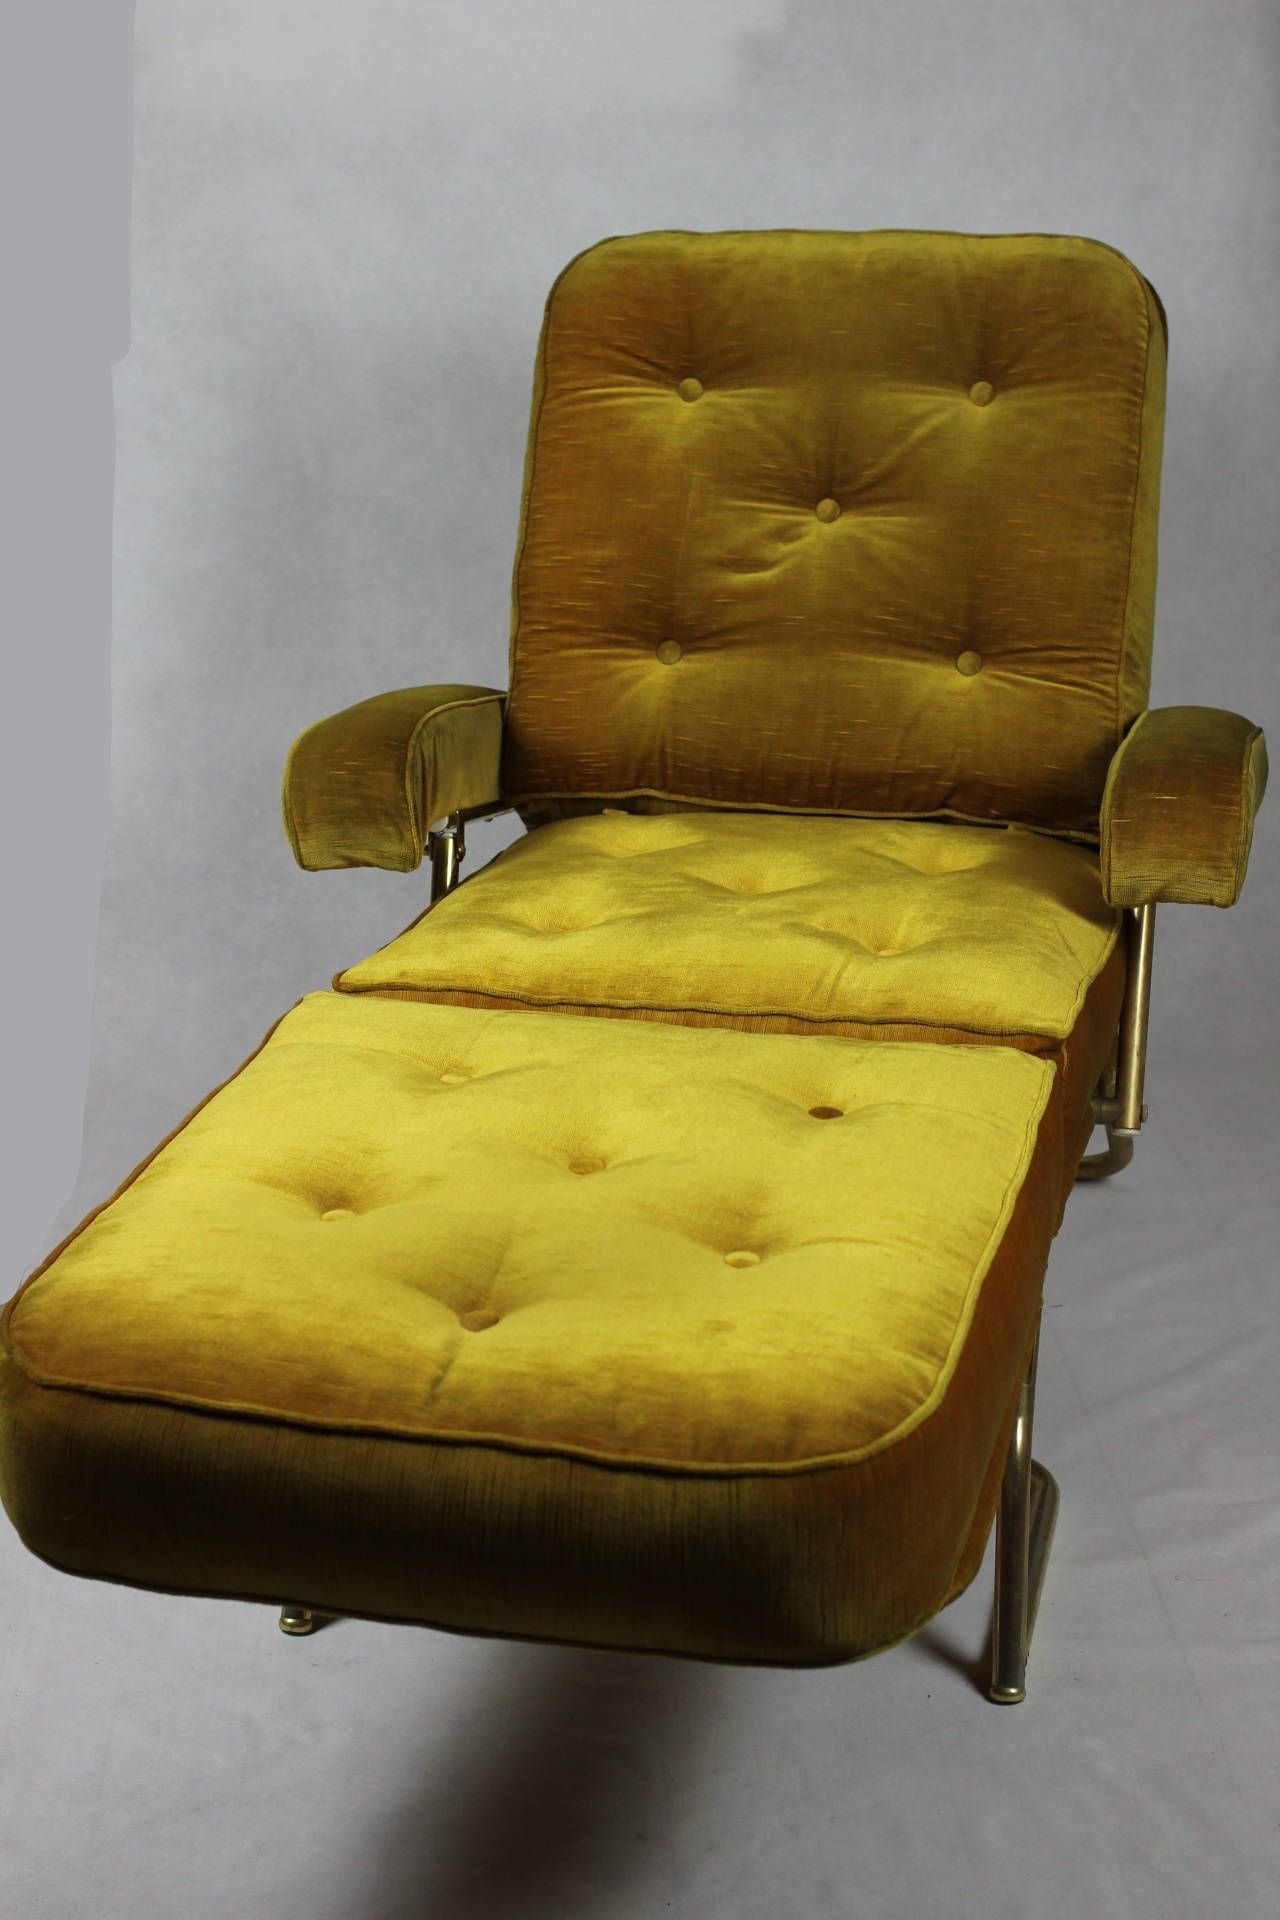 Widely Used French Seamed Sectional Sofas Oblong Mustard With French Designer Chaise Longue // 1970's Avacado Green (View 15 of 20)